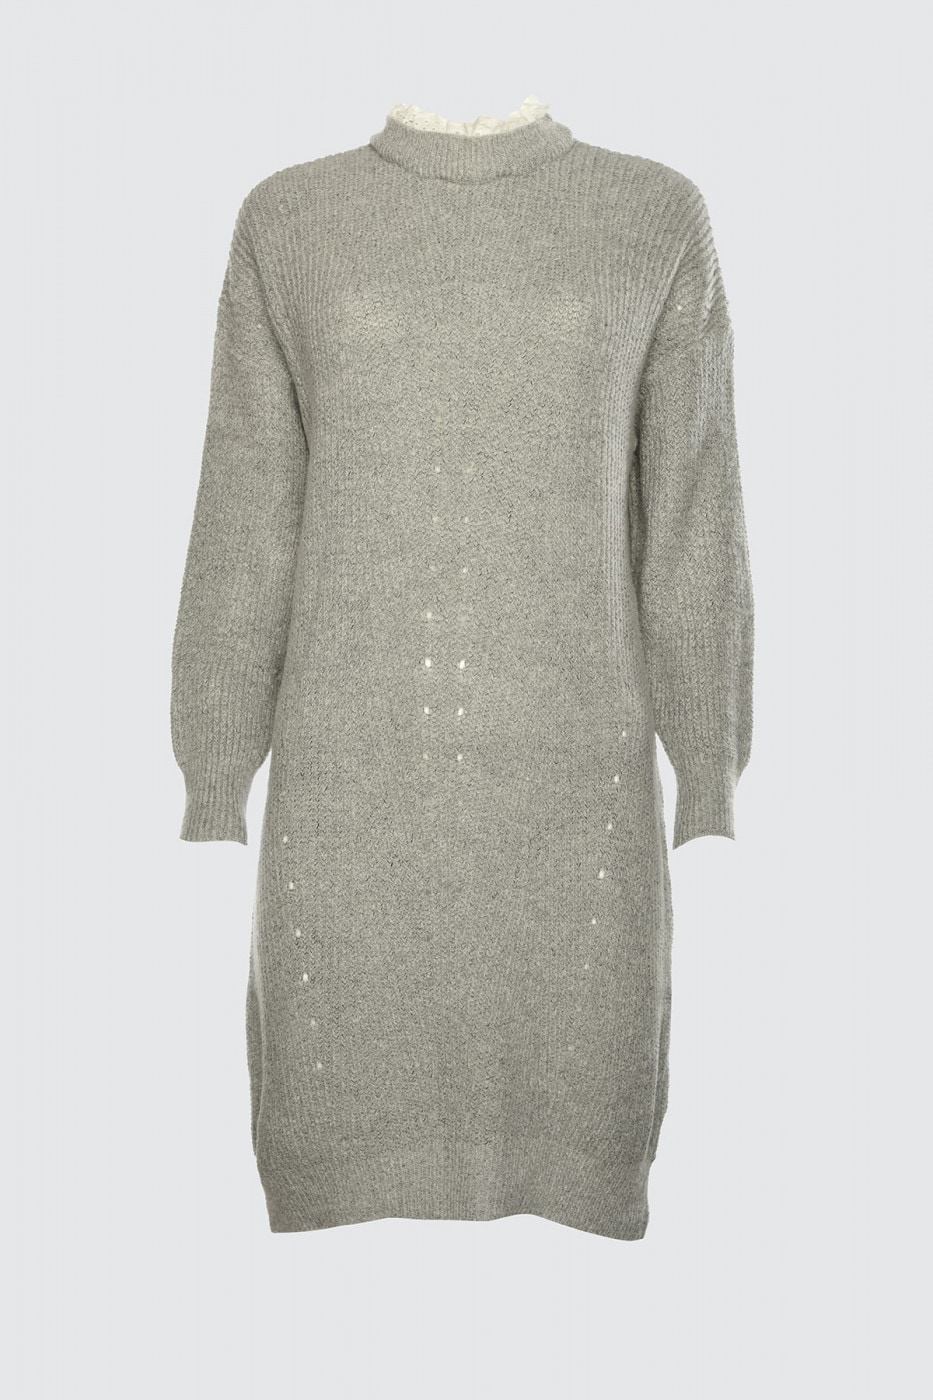 Trendyol Grey Lace Detailed Knitwear Dress